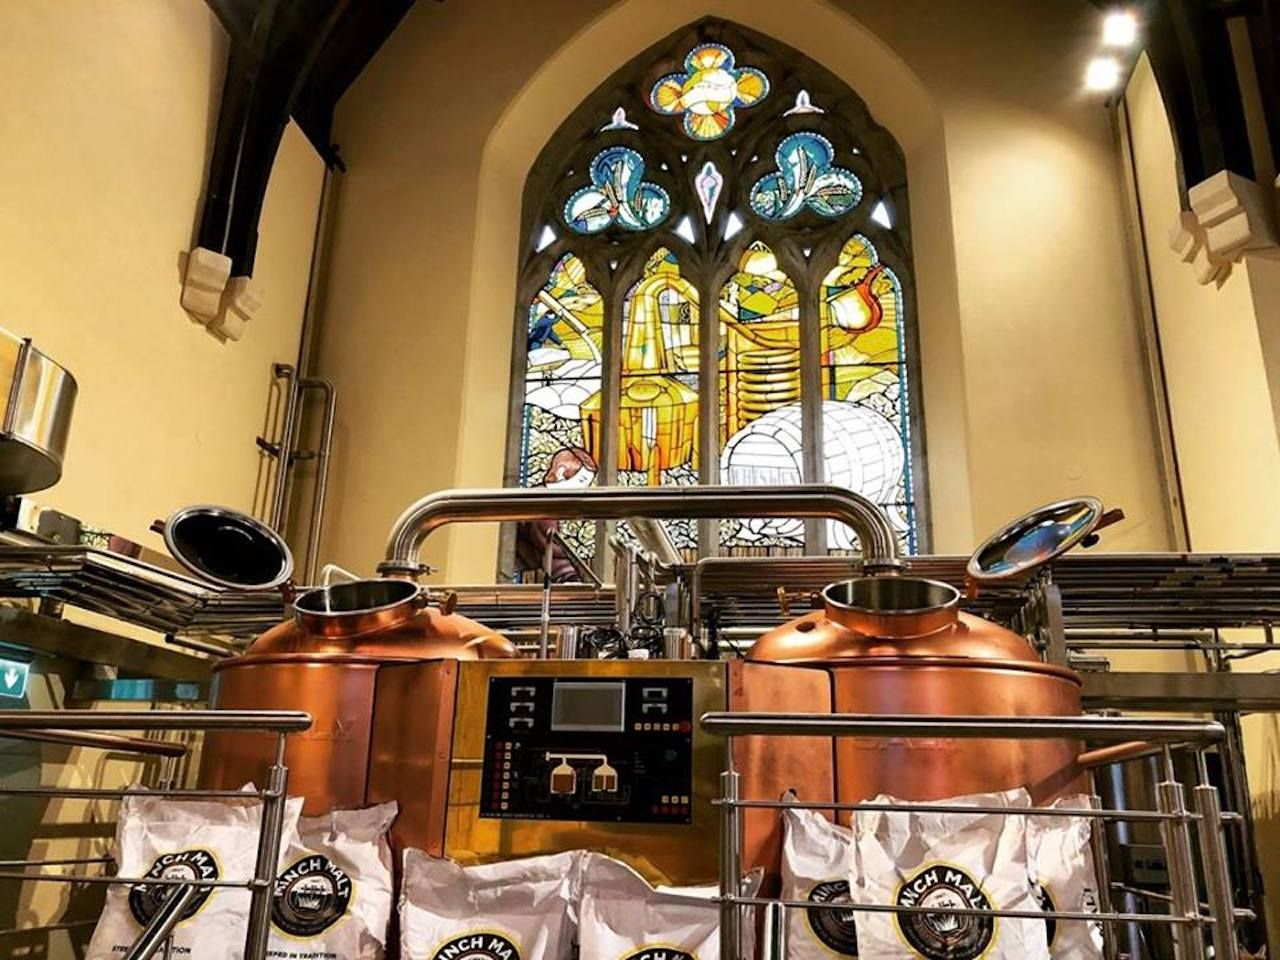 Machinery at the Pearse Lyons Distillery in Ireland